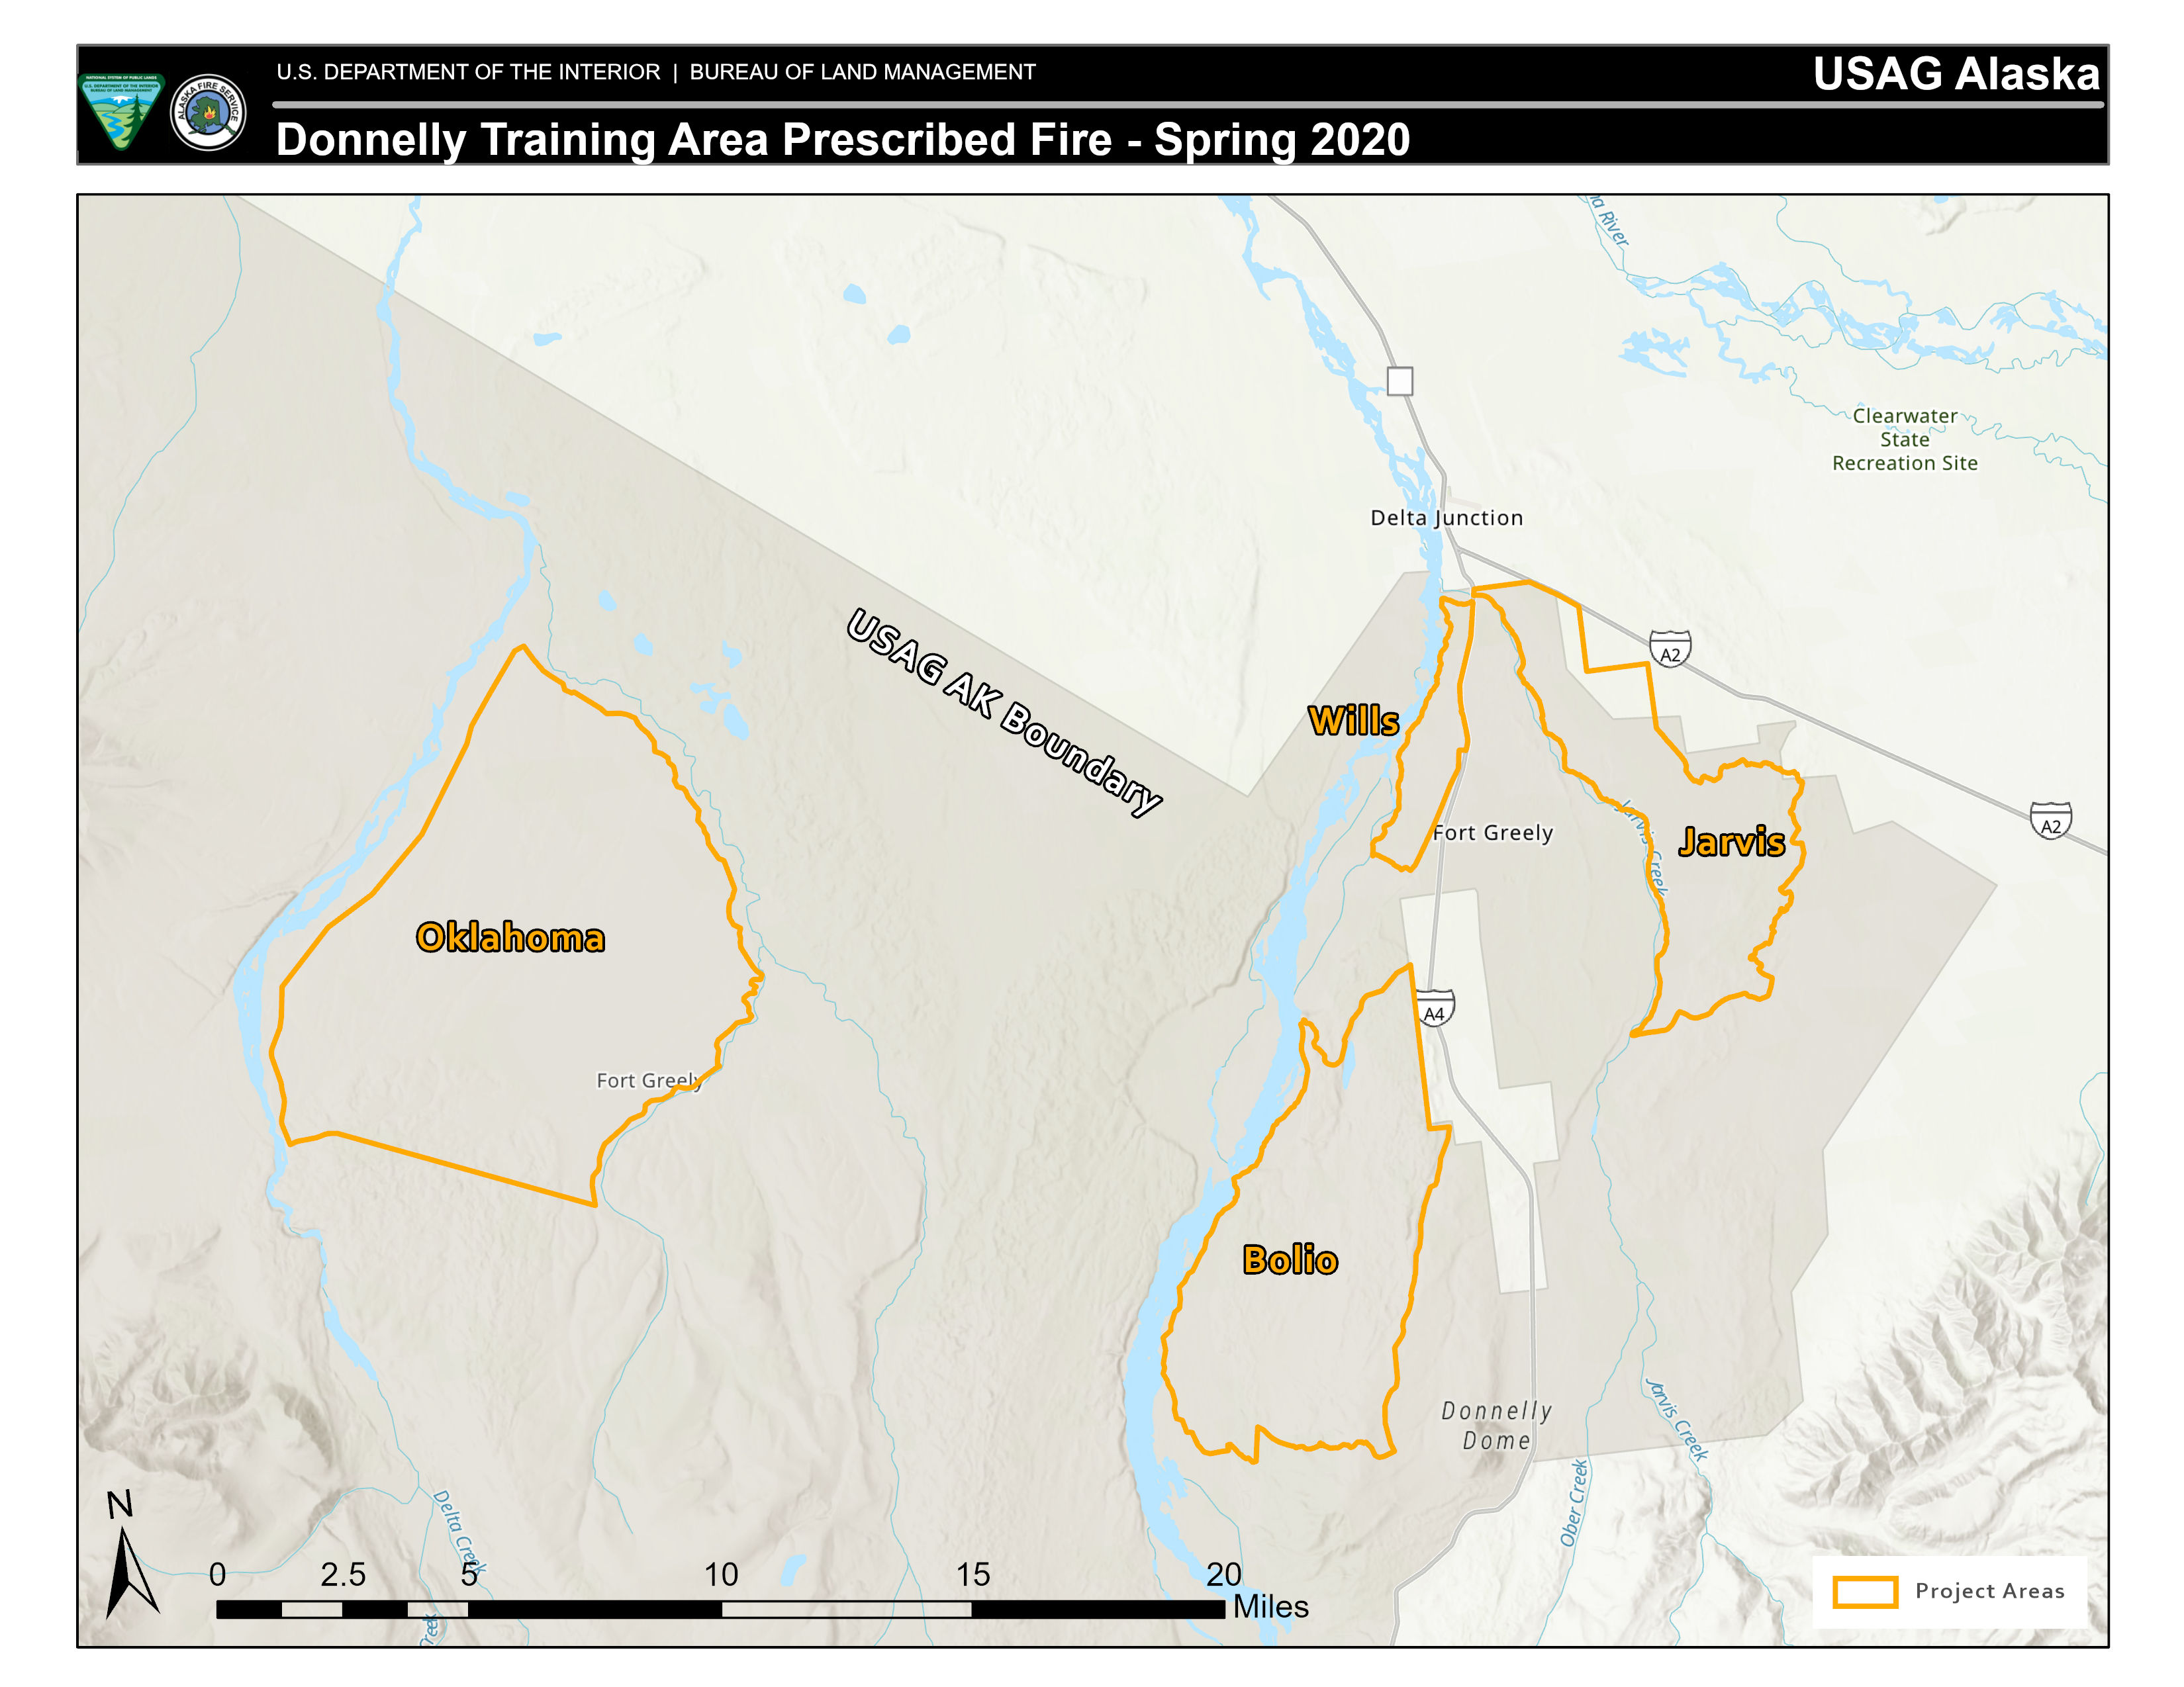 Map of planned prescribed burns in the Donnelly Training Area.